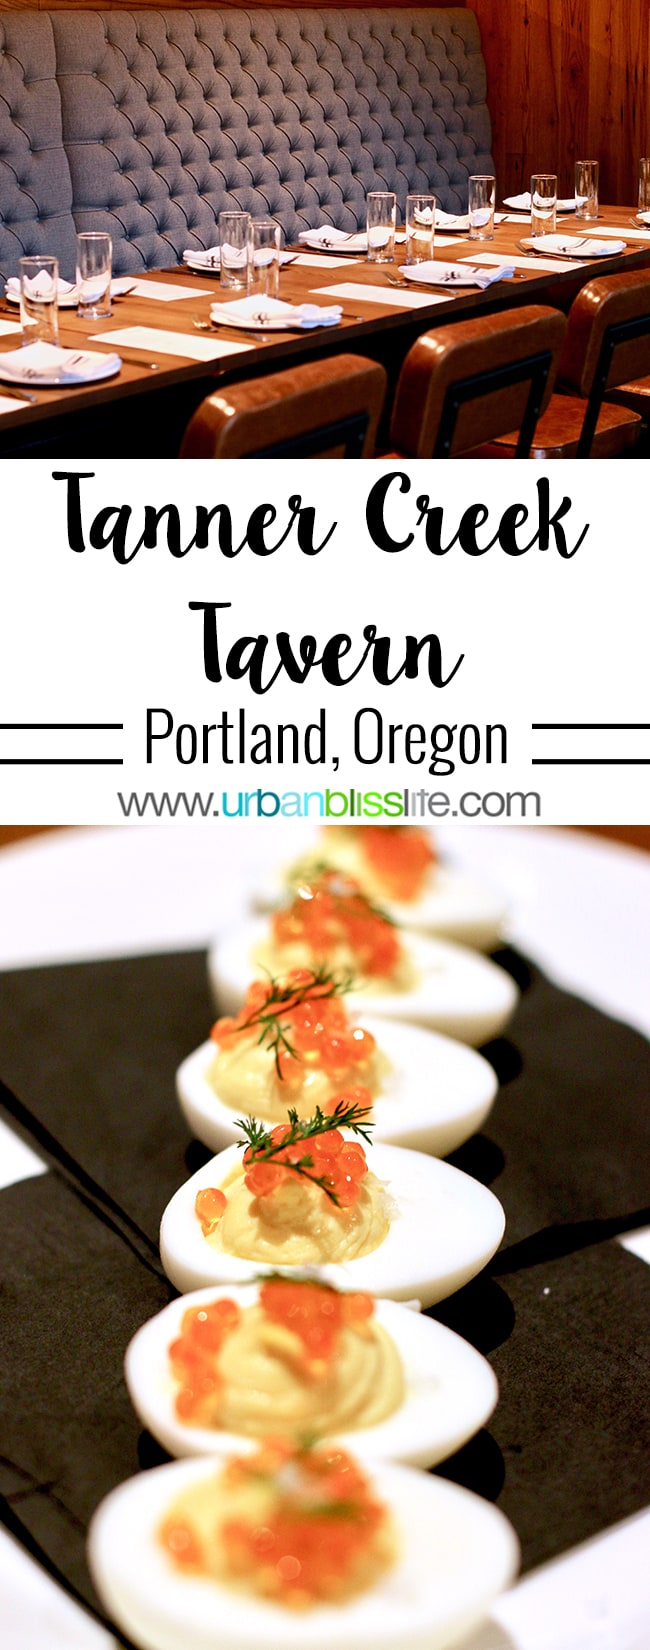 Tanner Creek Tavern Portland, Oregonrestaurant review on UrbanBlissLife.com.